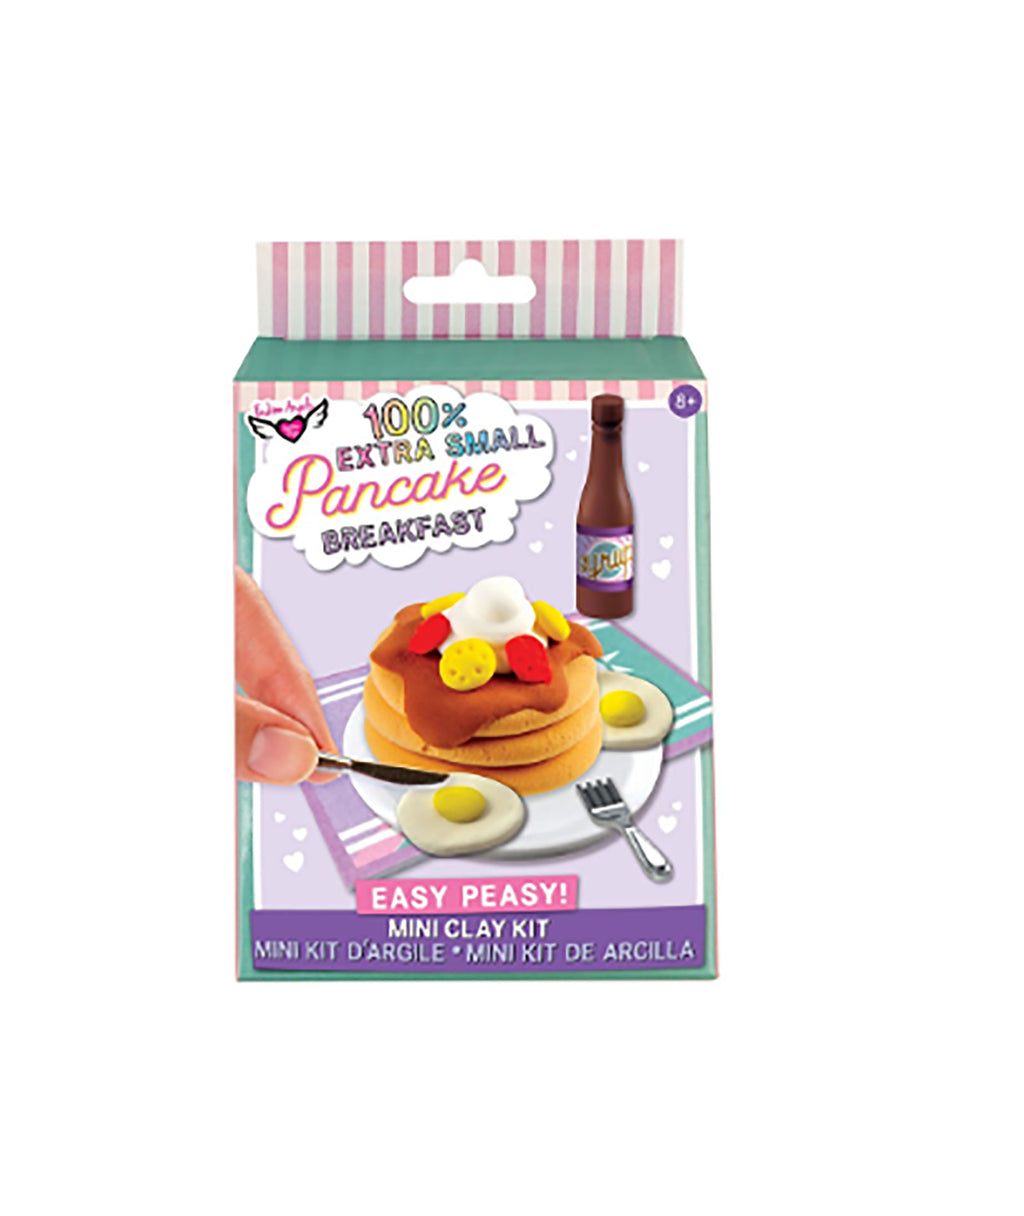 Fashion Angels Mini Pancake Breakfast Kit